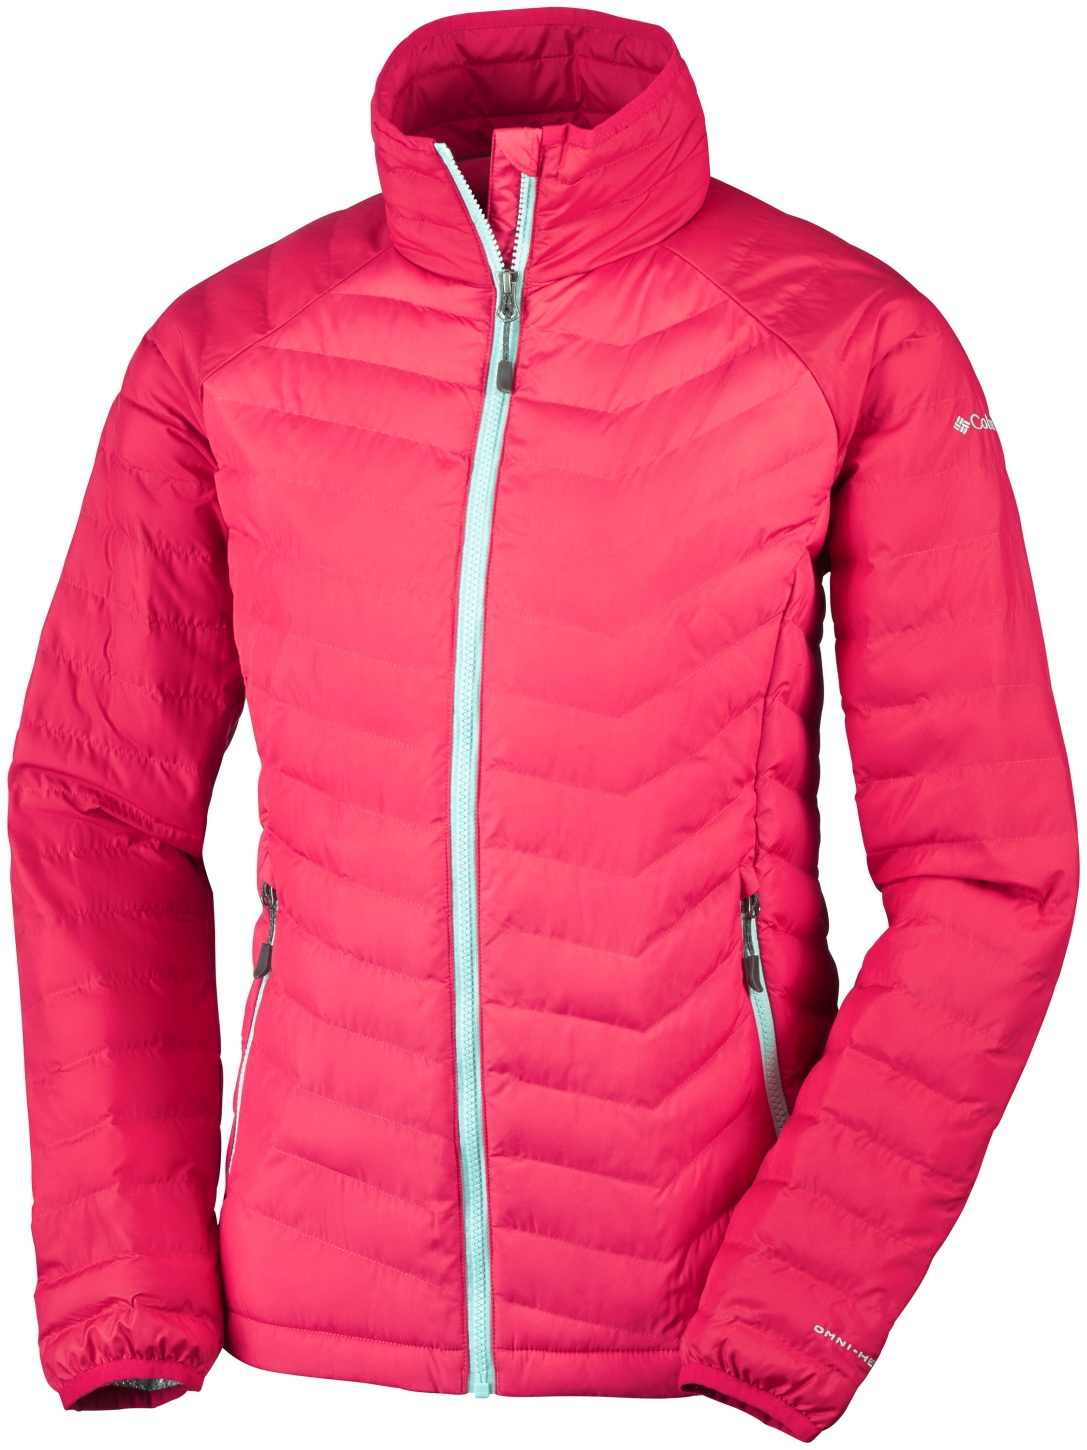 Columbia Women's Powder Lite Jacket Red Camellia, Red Lily-30